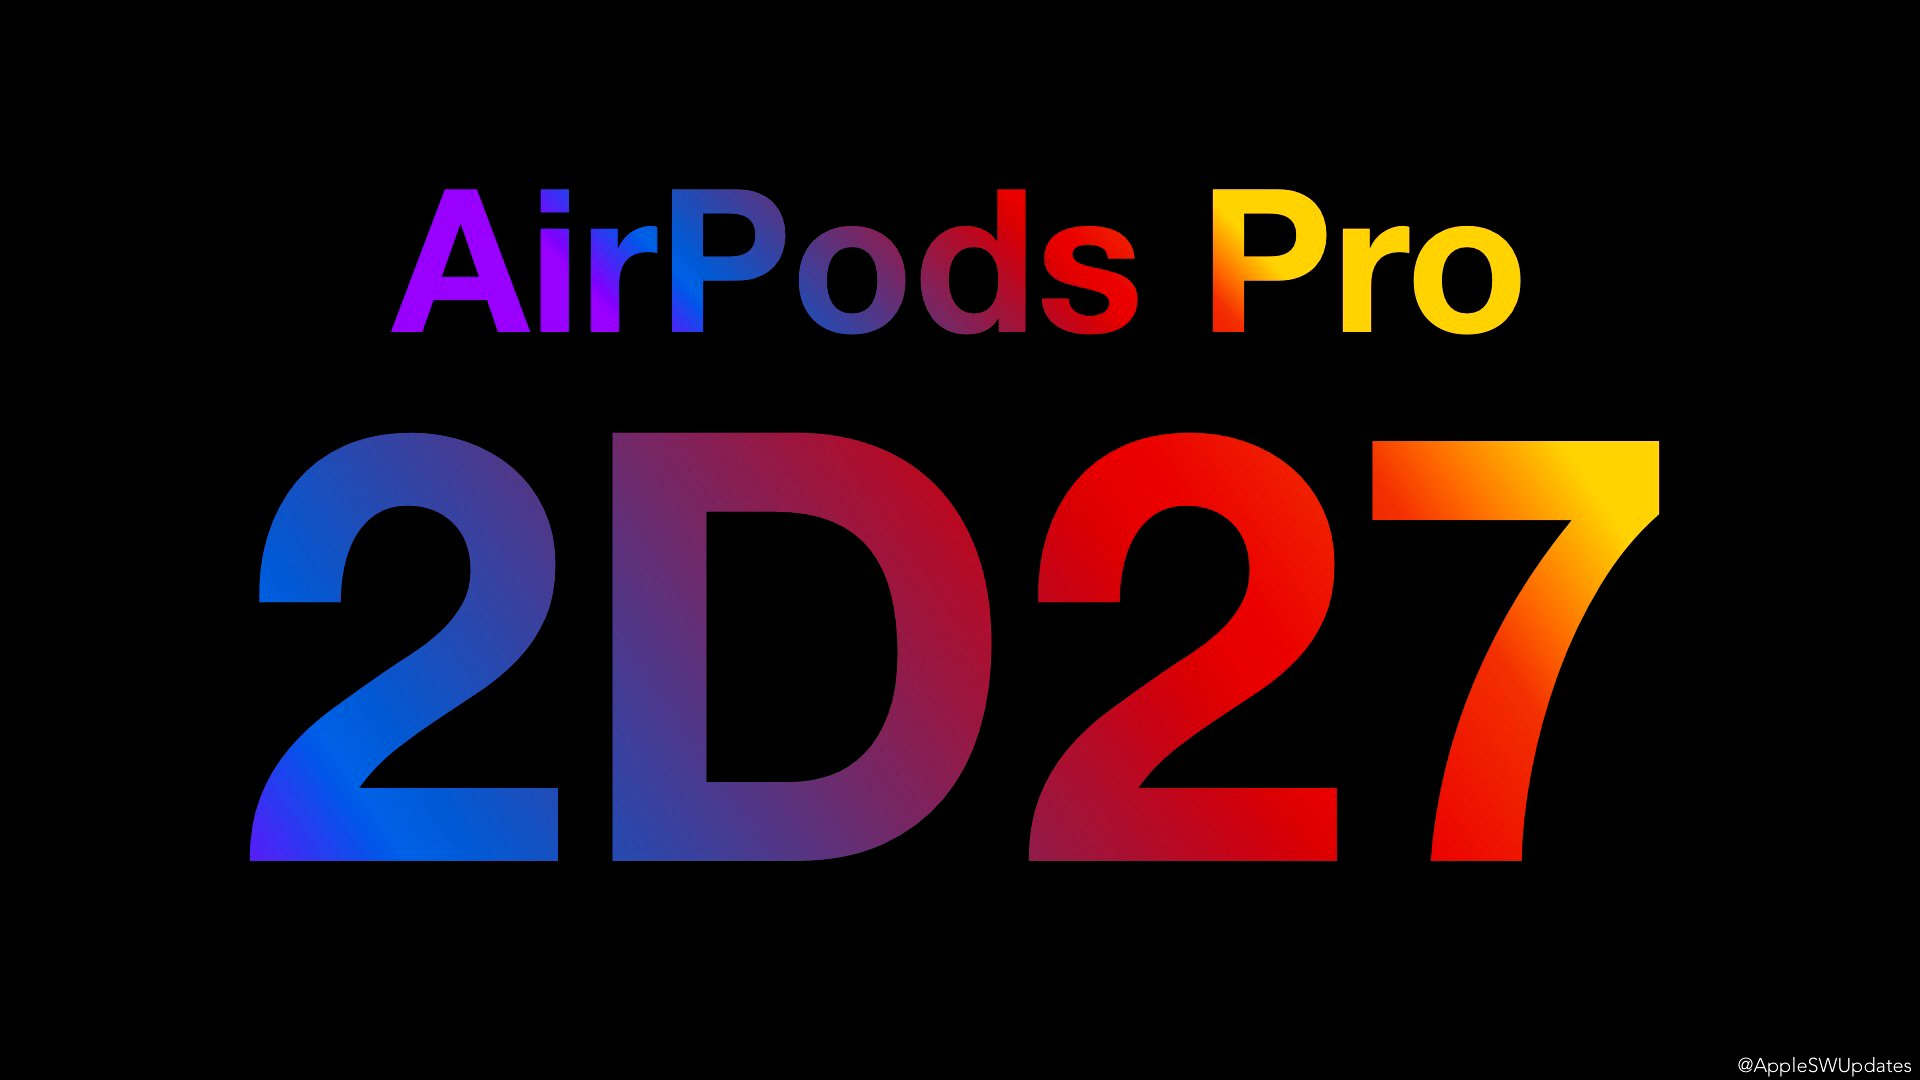 Apple Software Updates On Twitter Airpods Pro Firmware 2d27 Has